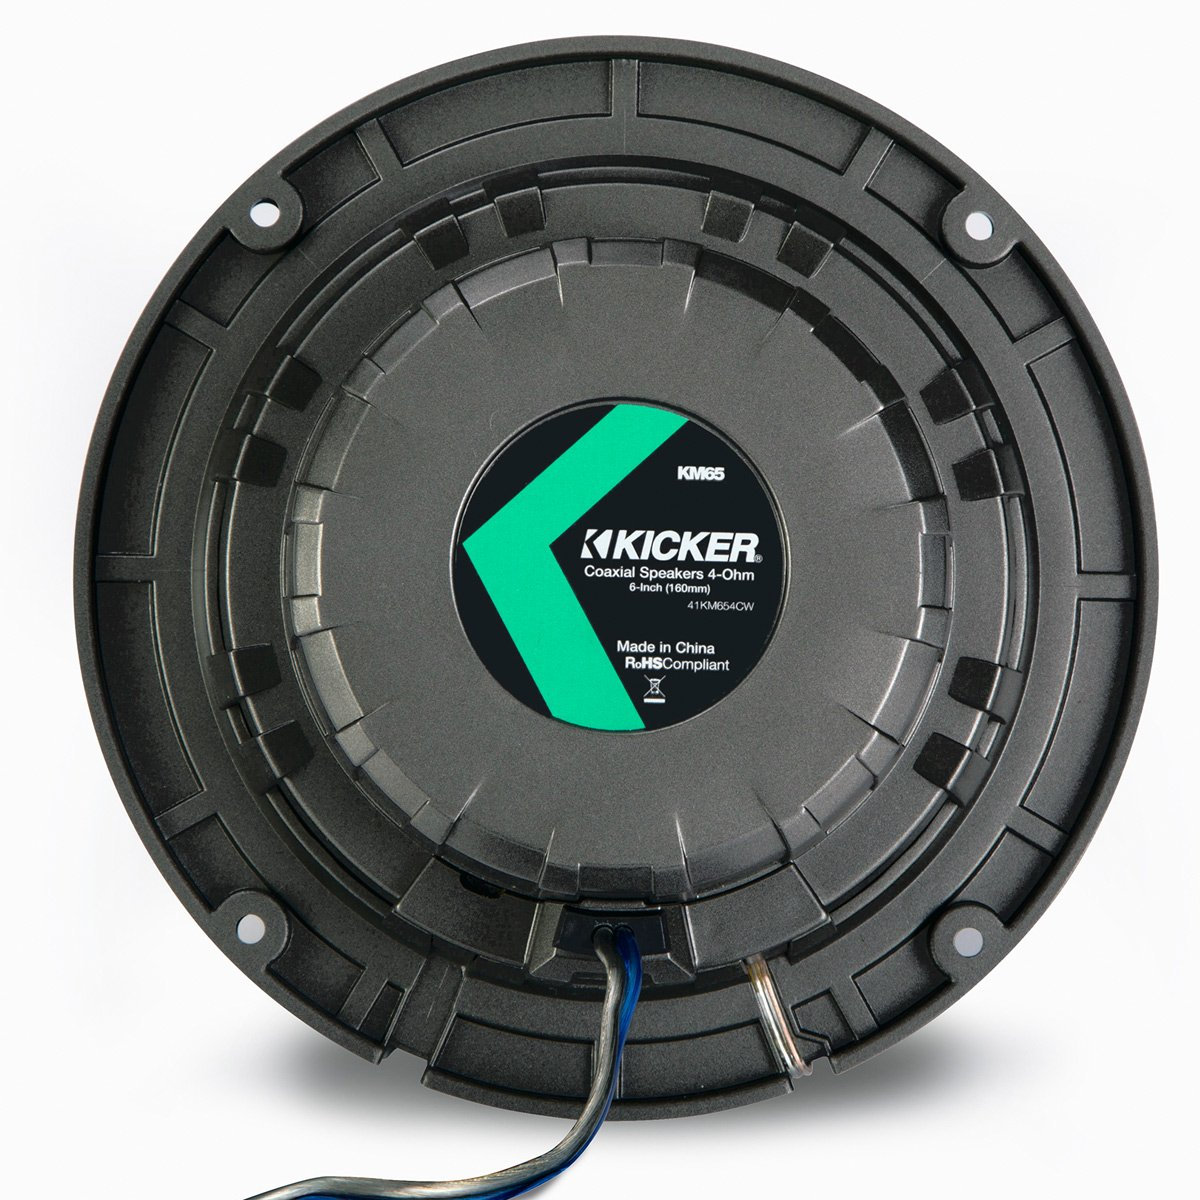 Pair of Kicker 41KM654CW 6.5'' 2-Way Coaxial 4-Ohm Marine/Boat Speakers with 3/4 Inch Titanium Waterproof Tweeters - 95 Watts Peak/65 Watts RMS Each Speaker / 390 Watts Peak/130 Watts RMS Per Pair by Kicker